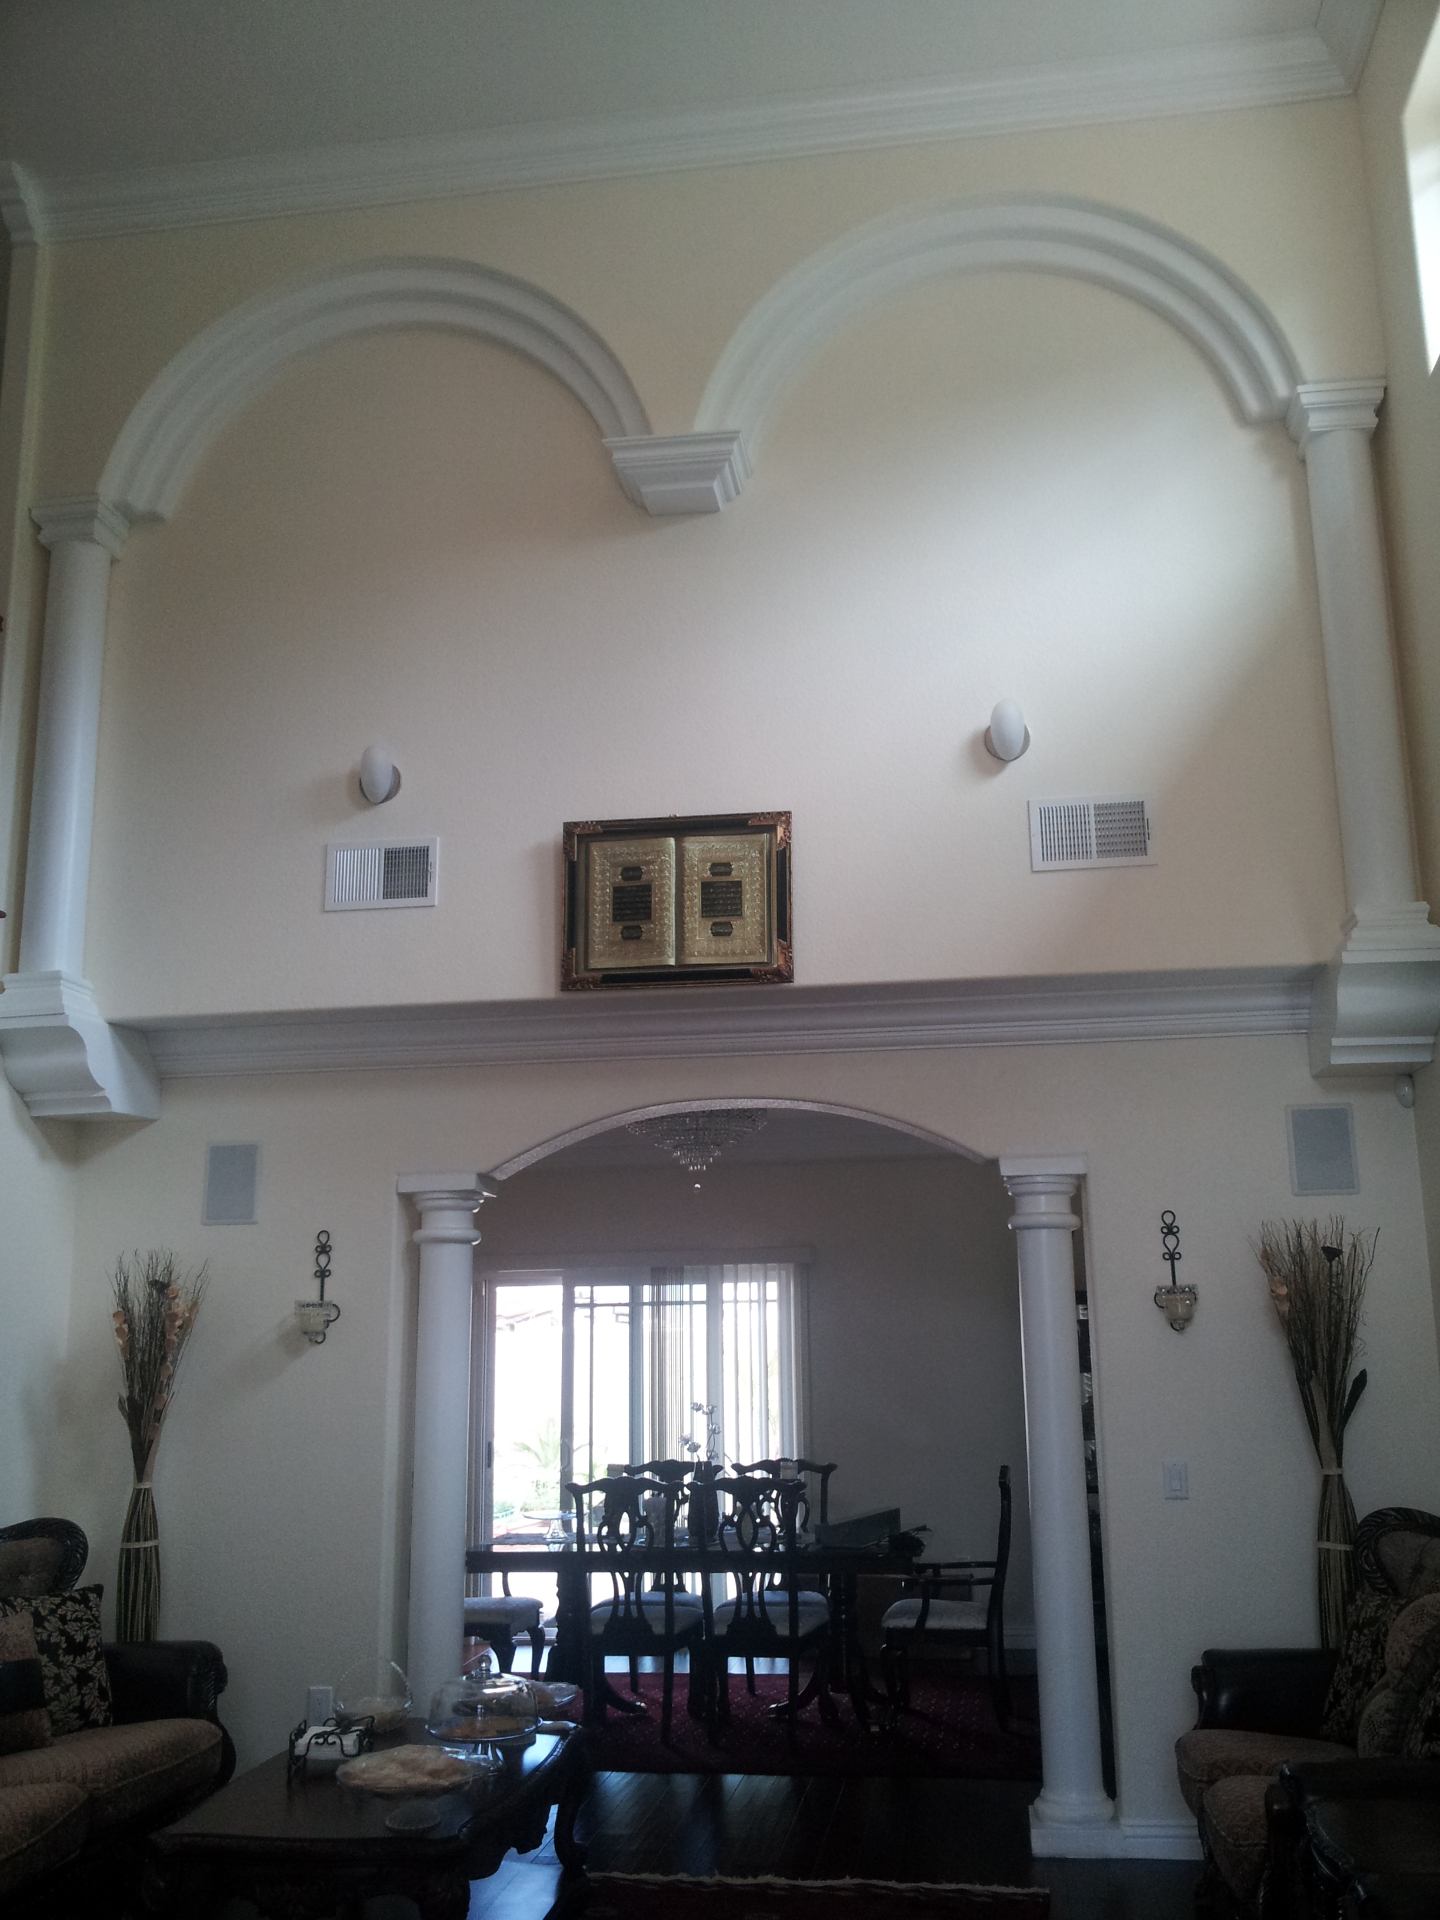 Interior Arch with Columns